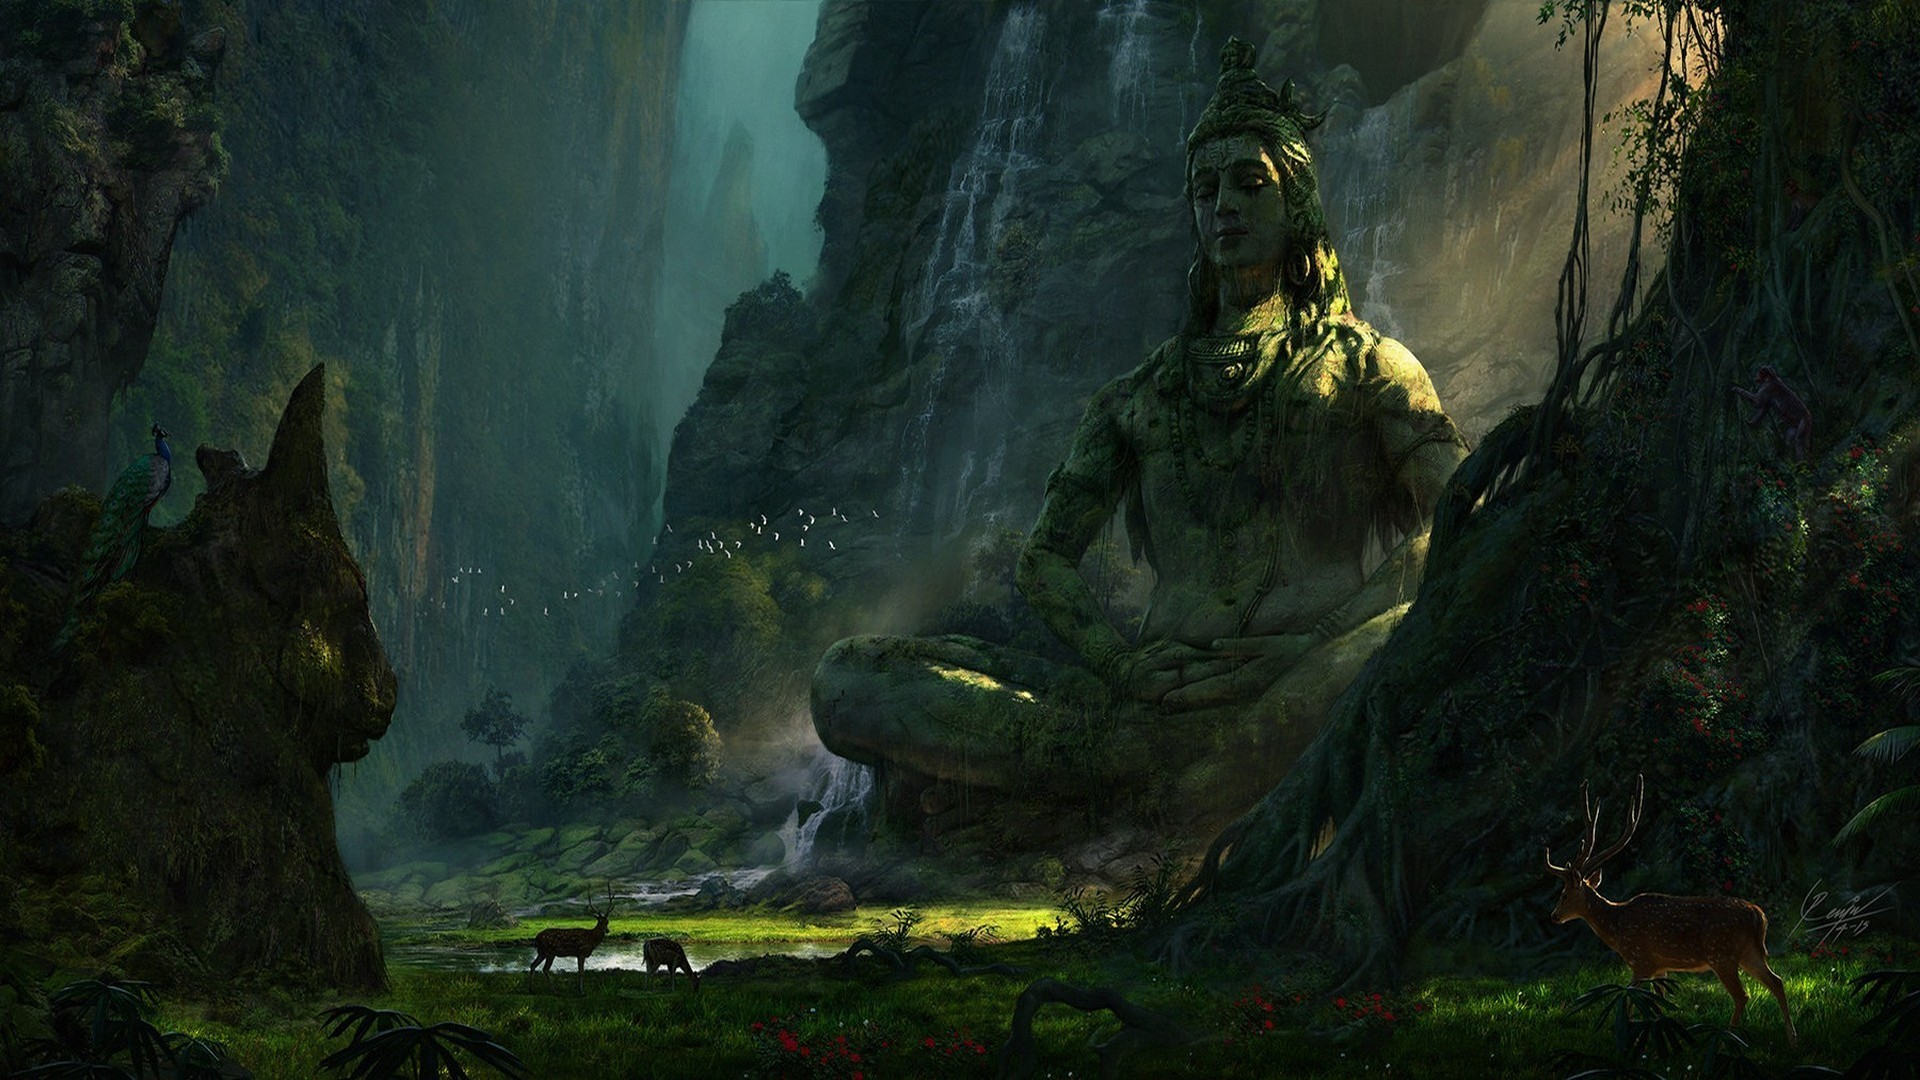 General 1920x1080 mountains deer landscape Earth lake waterfall nature Shiva Hinduism India